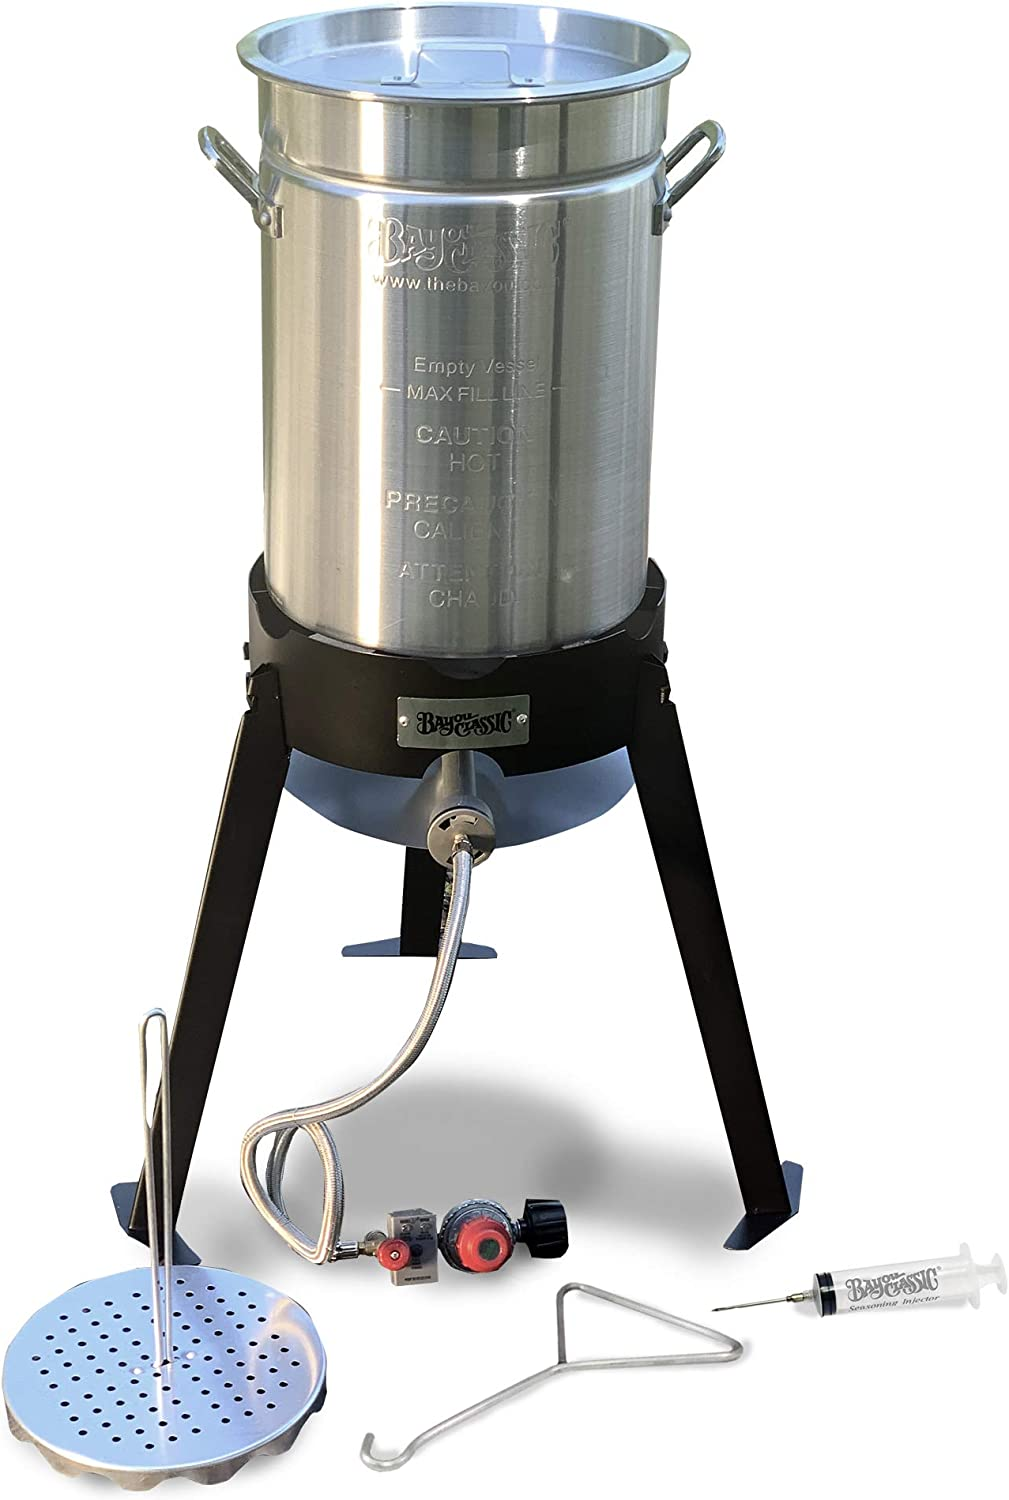 "Turkey Fryer Complete Kit 30 Quart Aluminum Fry Pot with 19"" Tall Steel Cooker Frame All Frying Accessories"